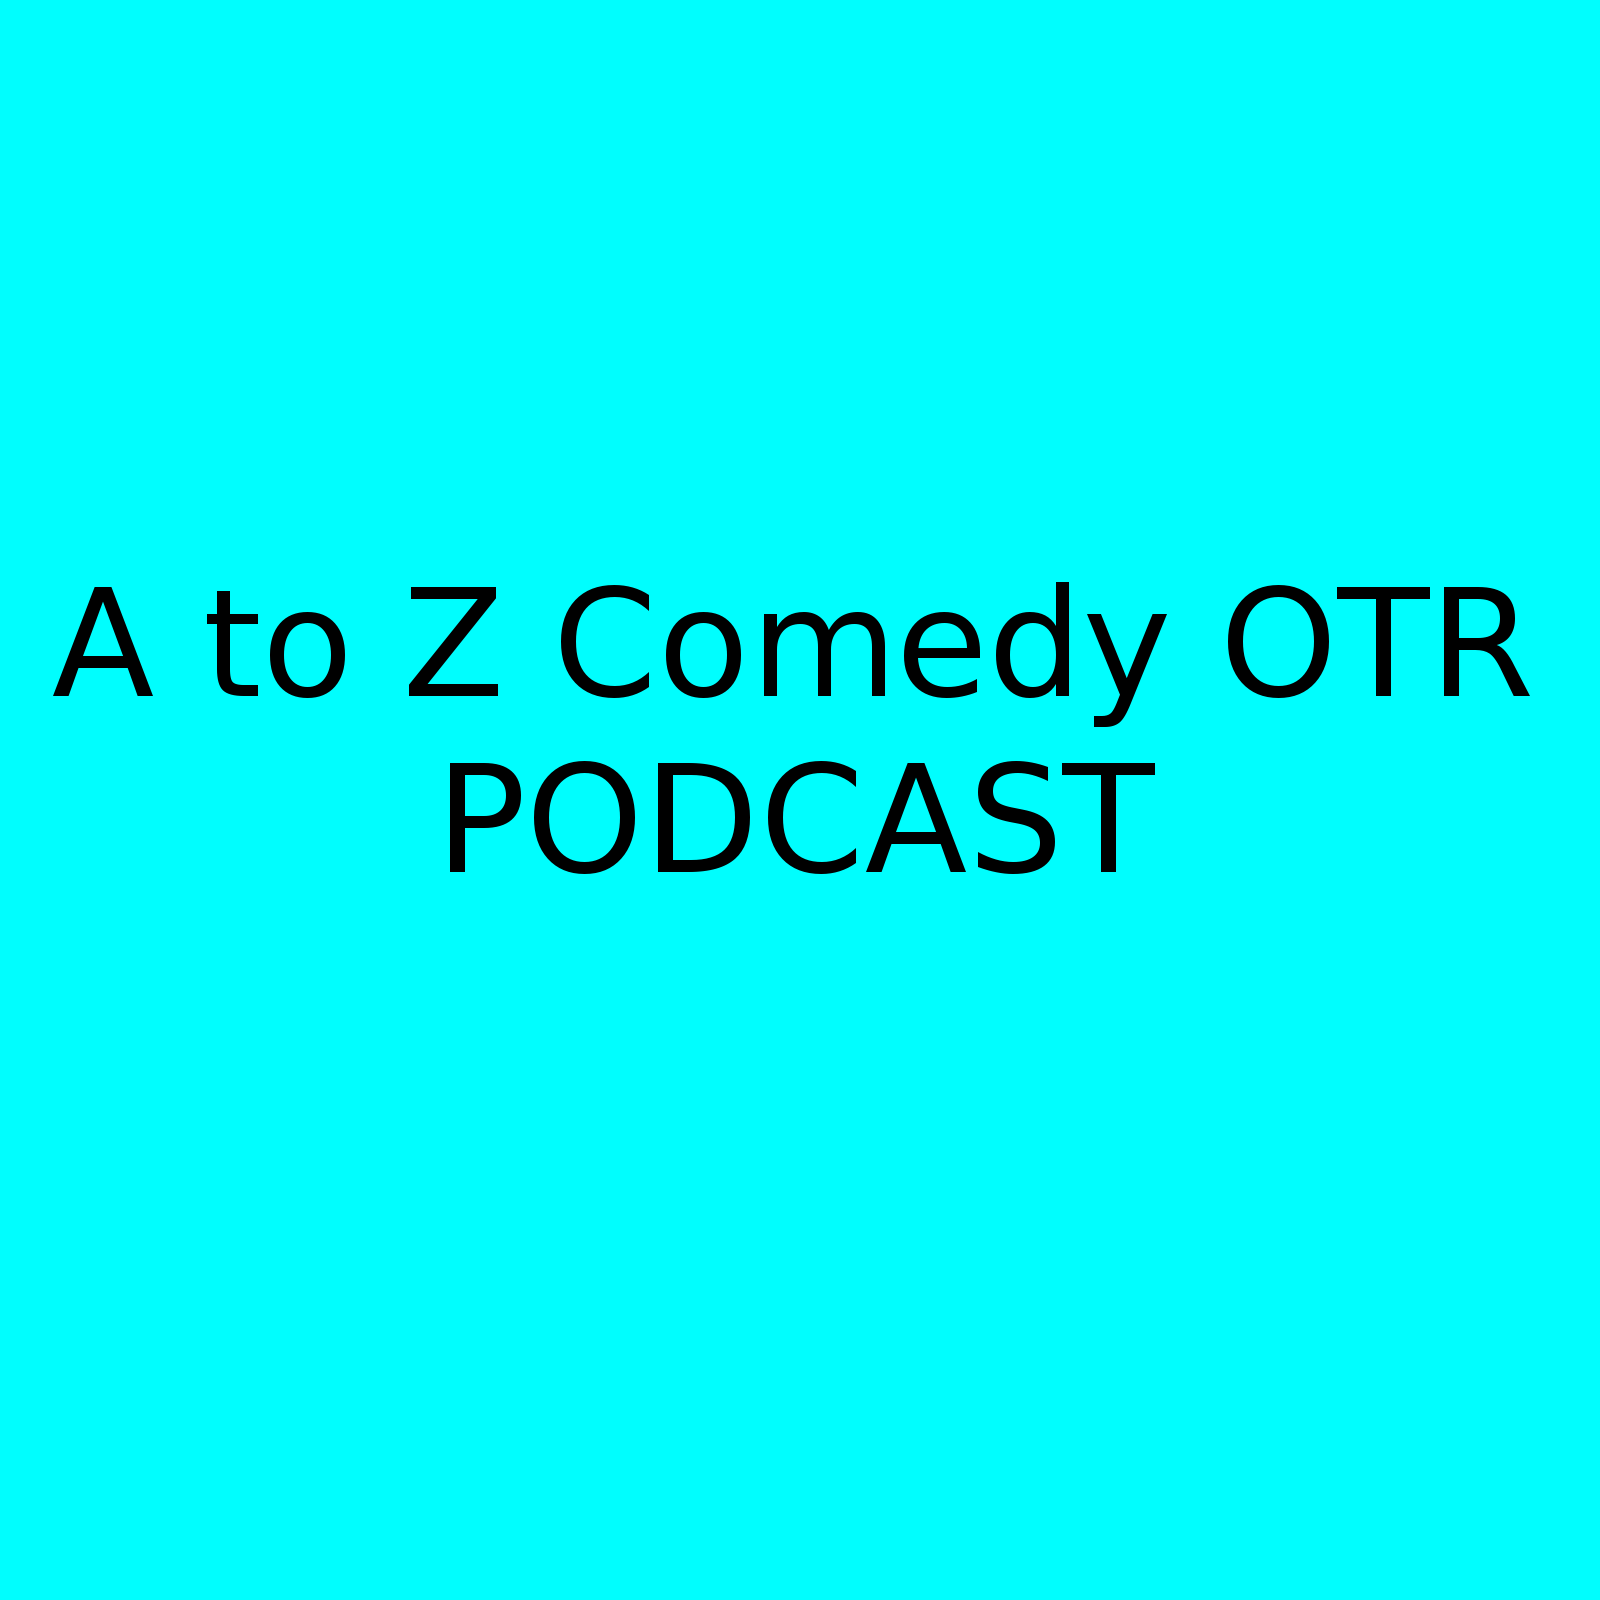 A to Z Comedy OTR Podcast Show #63